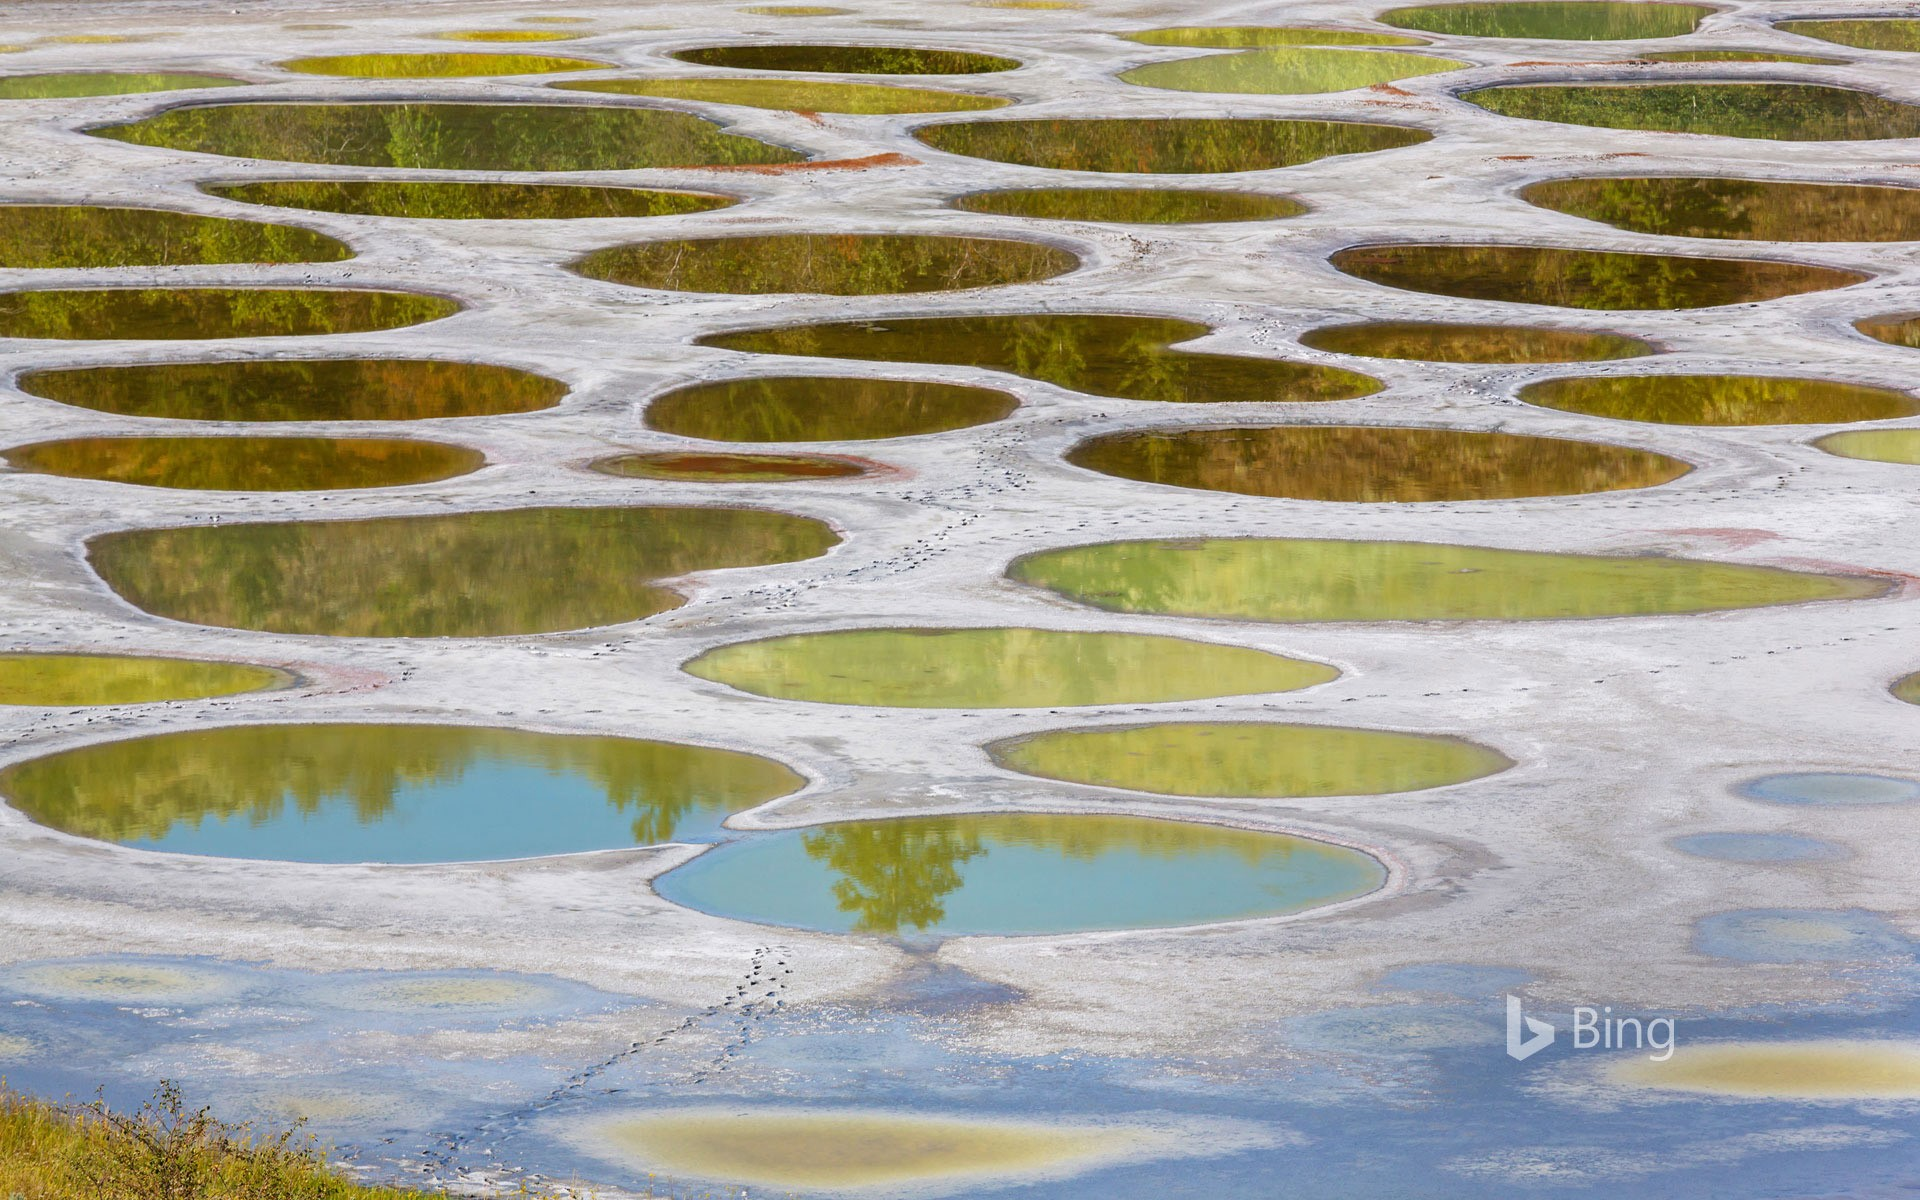 Spotted Lake in the Okanagan region of British Columbia, Canada